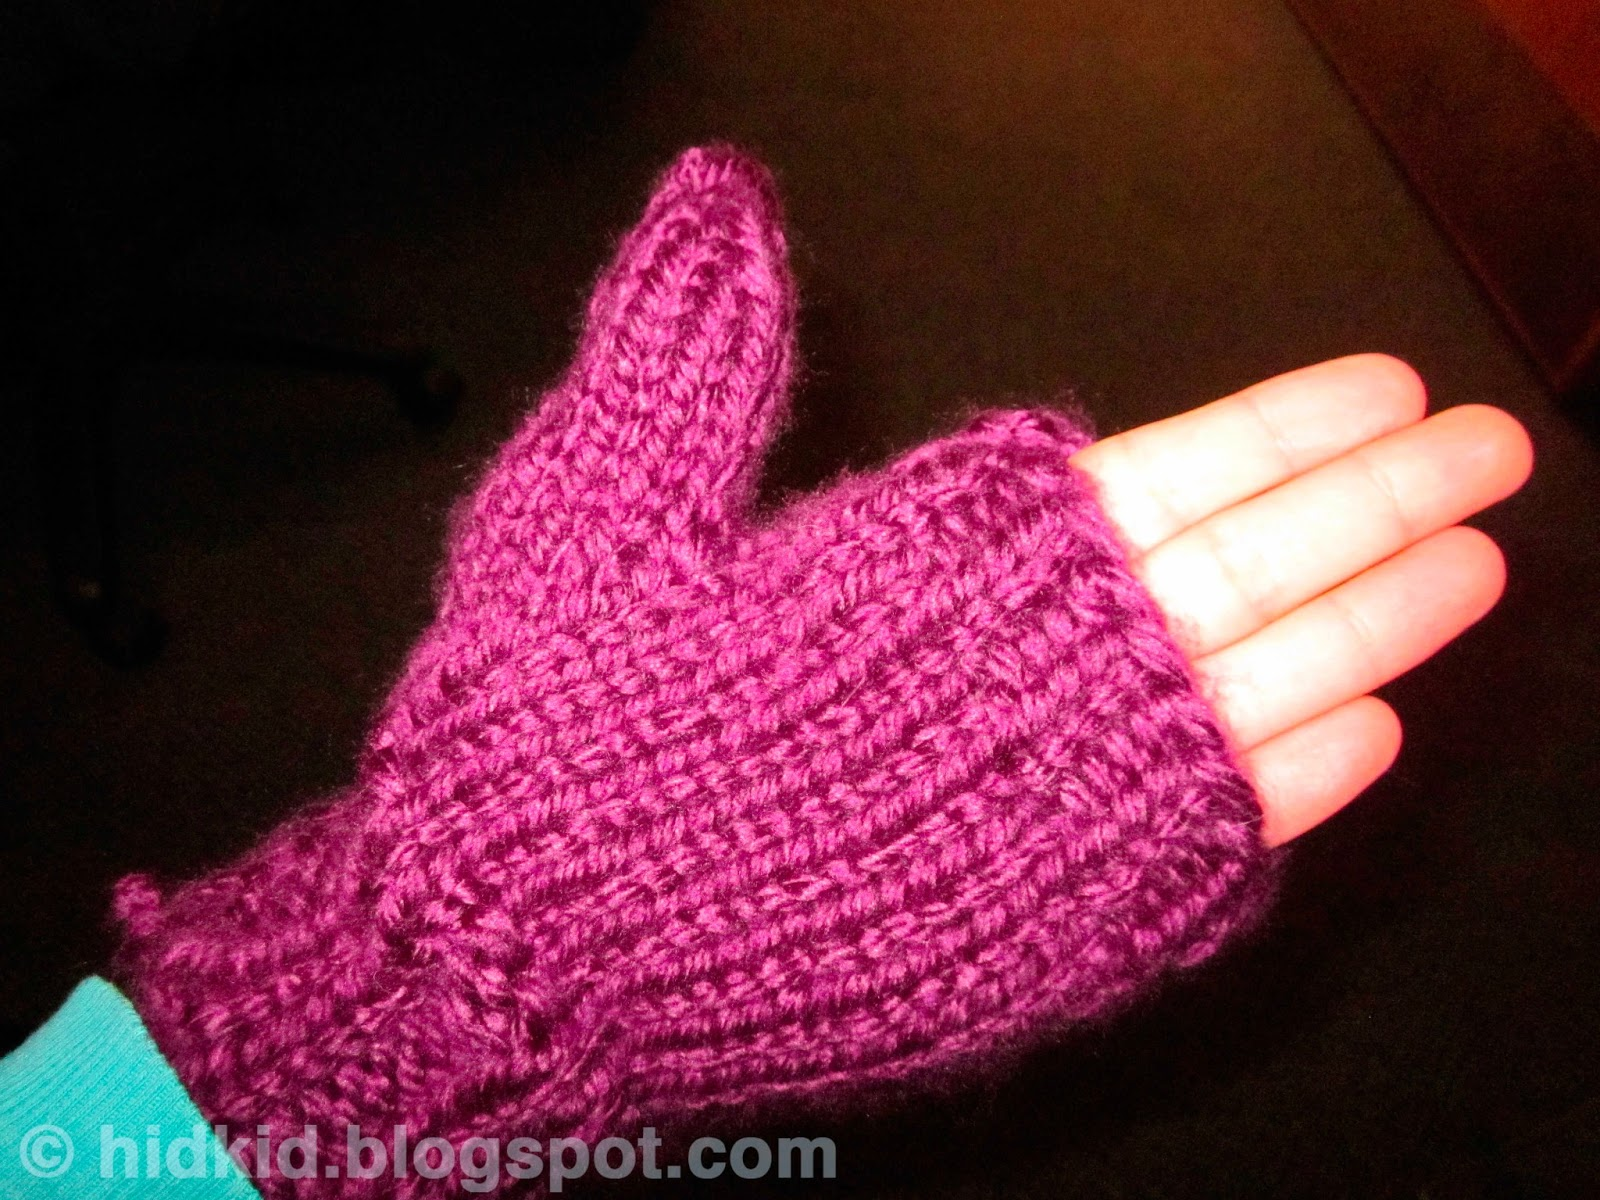 Knitting Pattern For Mittens With Flaps : Craftimism: Mittens with Flaps - tutorial